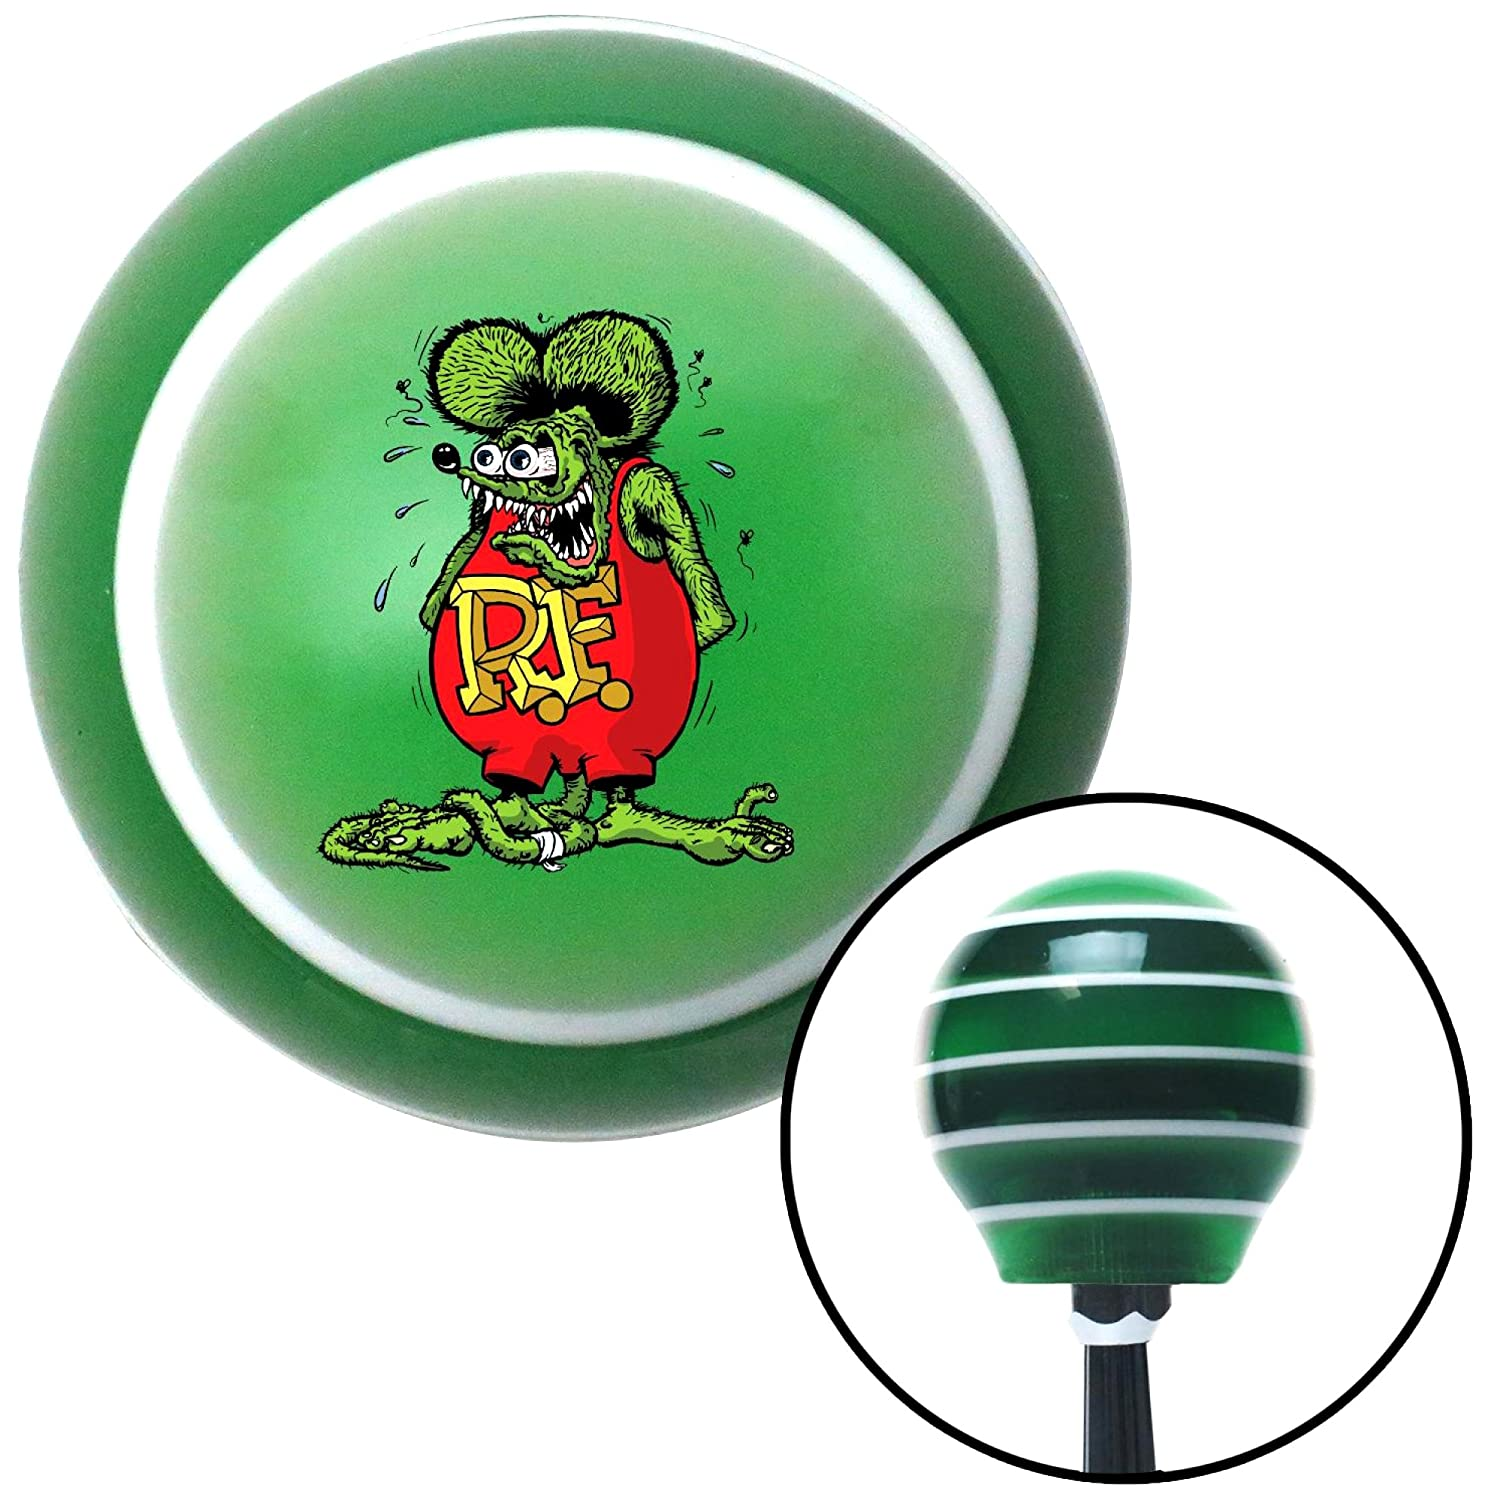 American Shifter 260321 Green Flame Metal Flake Shift Knob with M16 x 1.5 Insert Green 3 Speed Shift Pattern - 3RUR